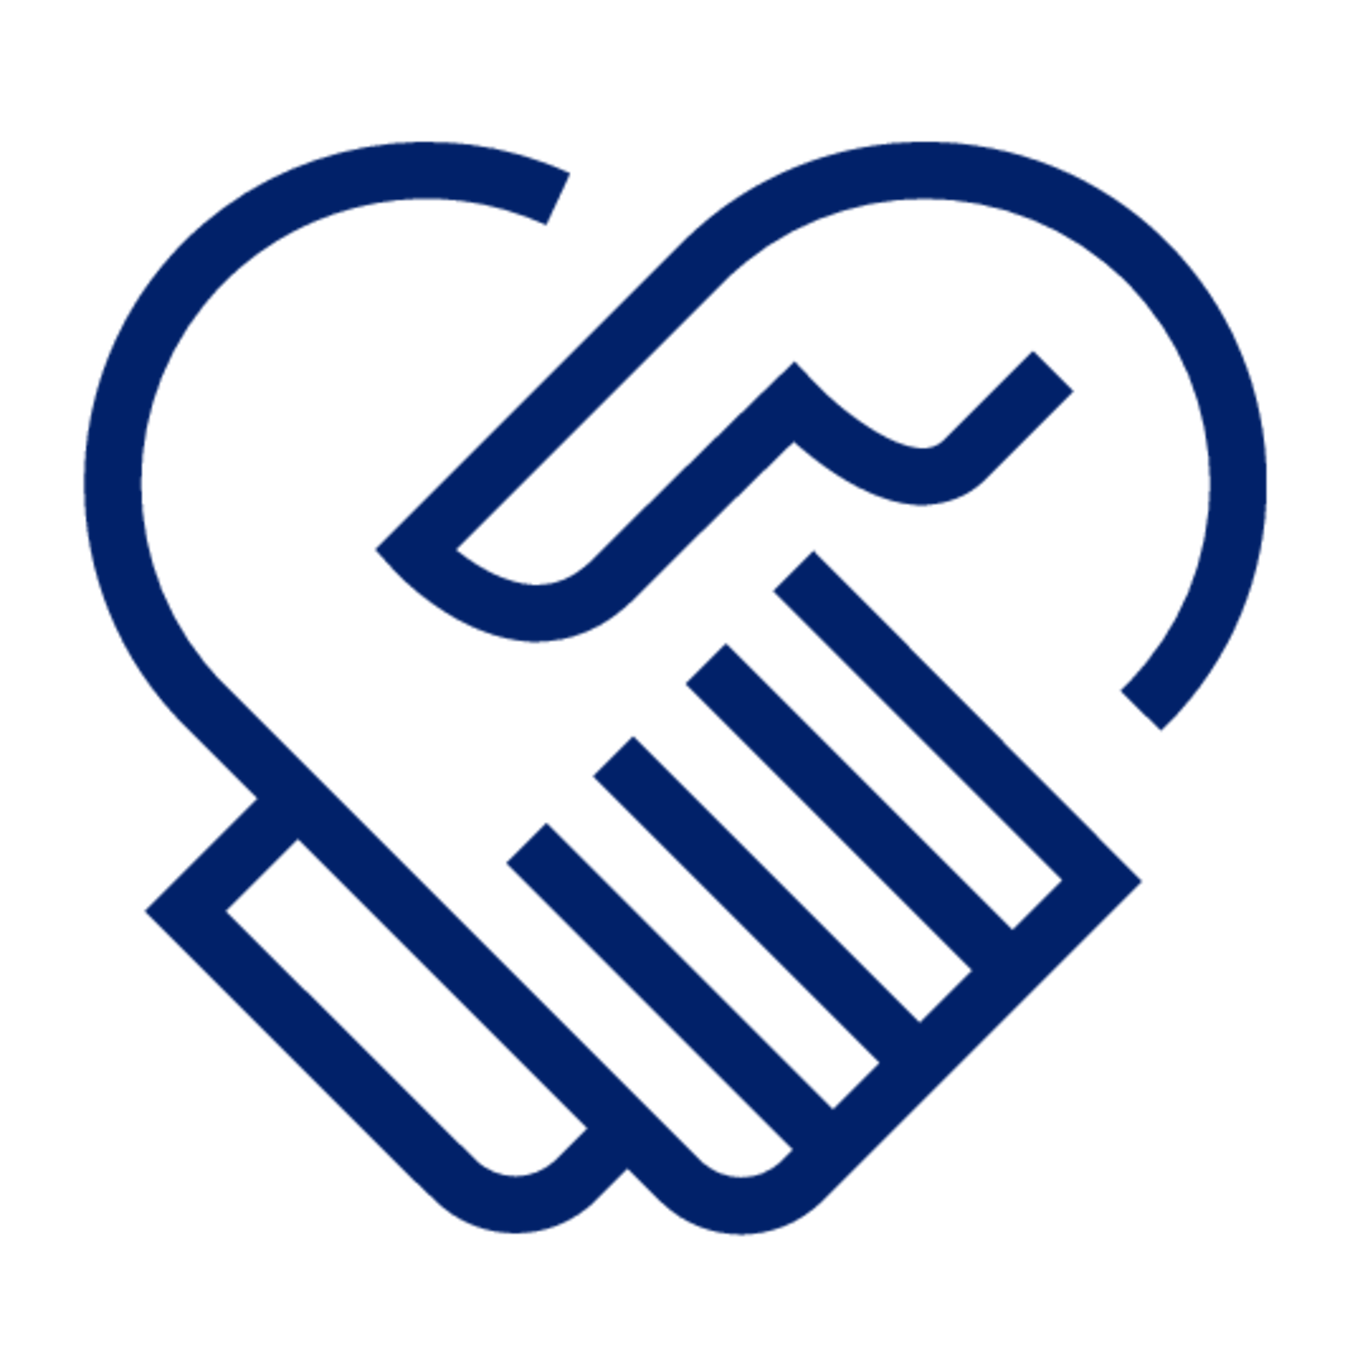 A blue icon of two hands holding, shaping a heart.